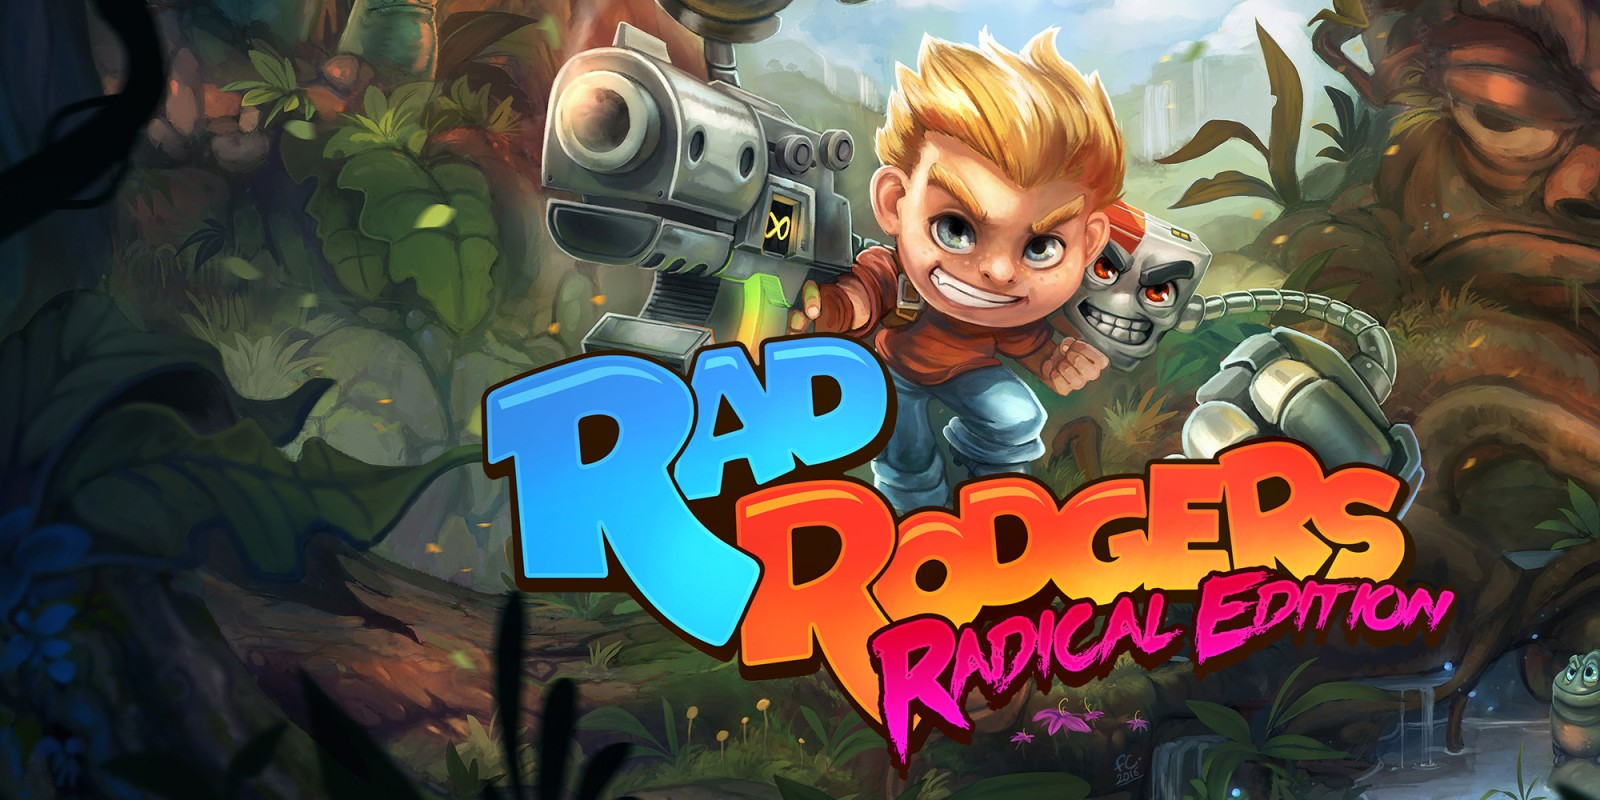 rad rodger radical edition nintendo switch review